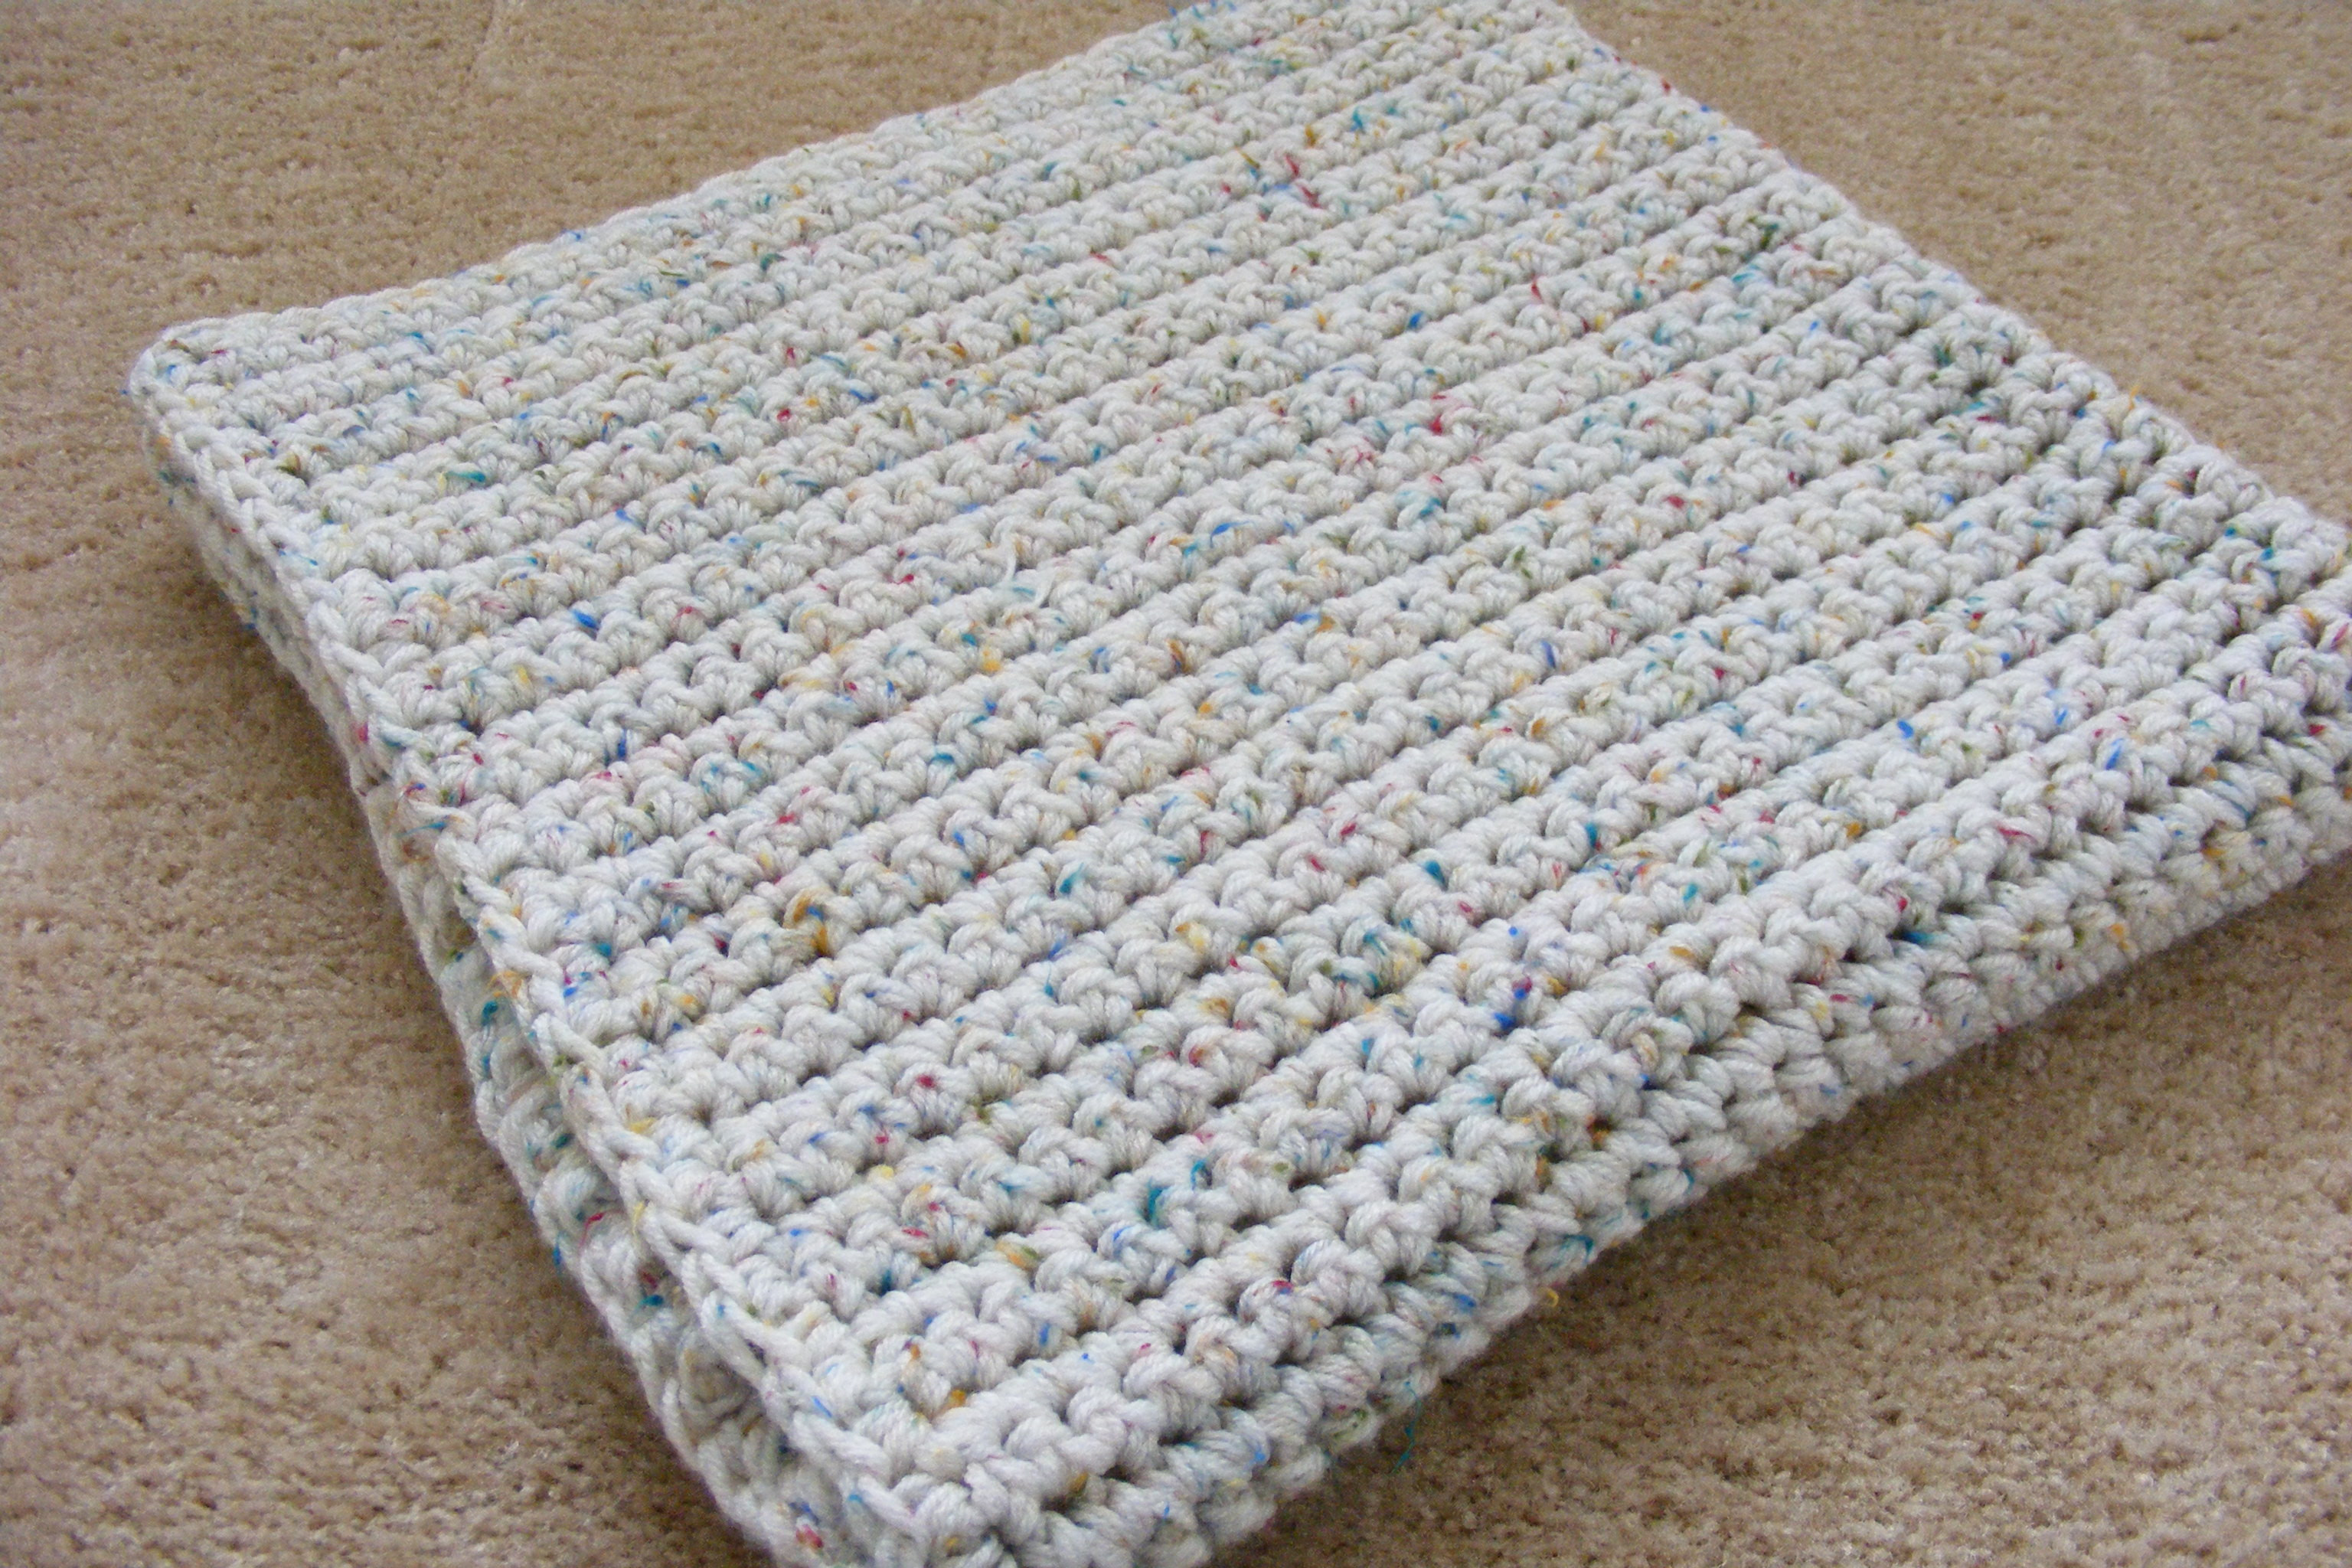 Crochet Stitches for Blankets Luxury Single Crochet Baby Blanket Of New 42 Images Crochet Stitches for Blankets